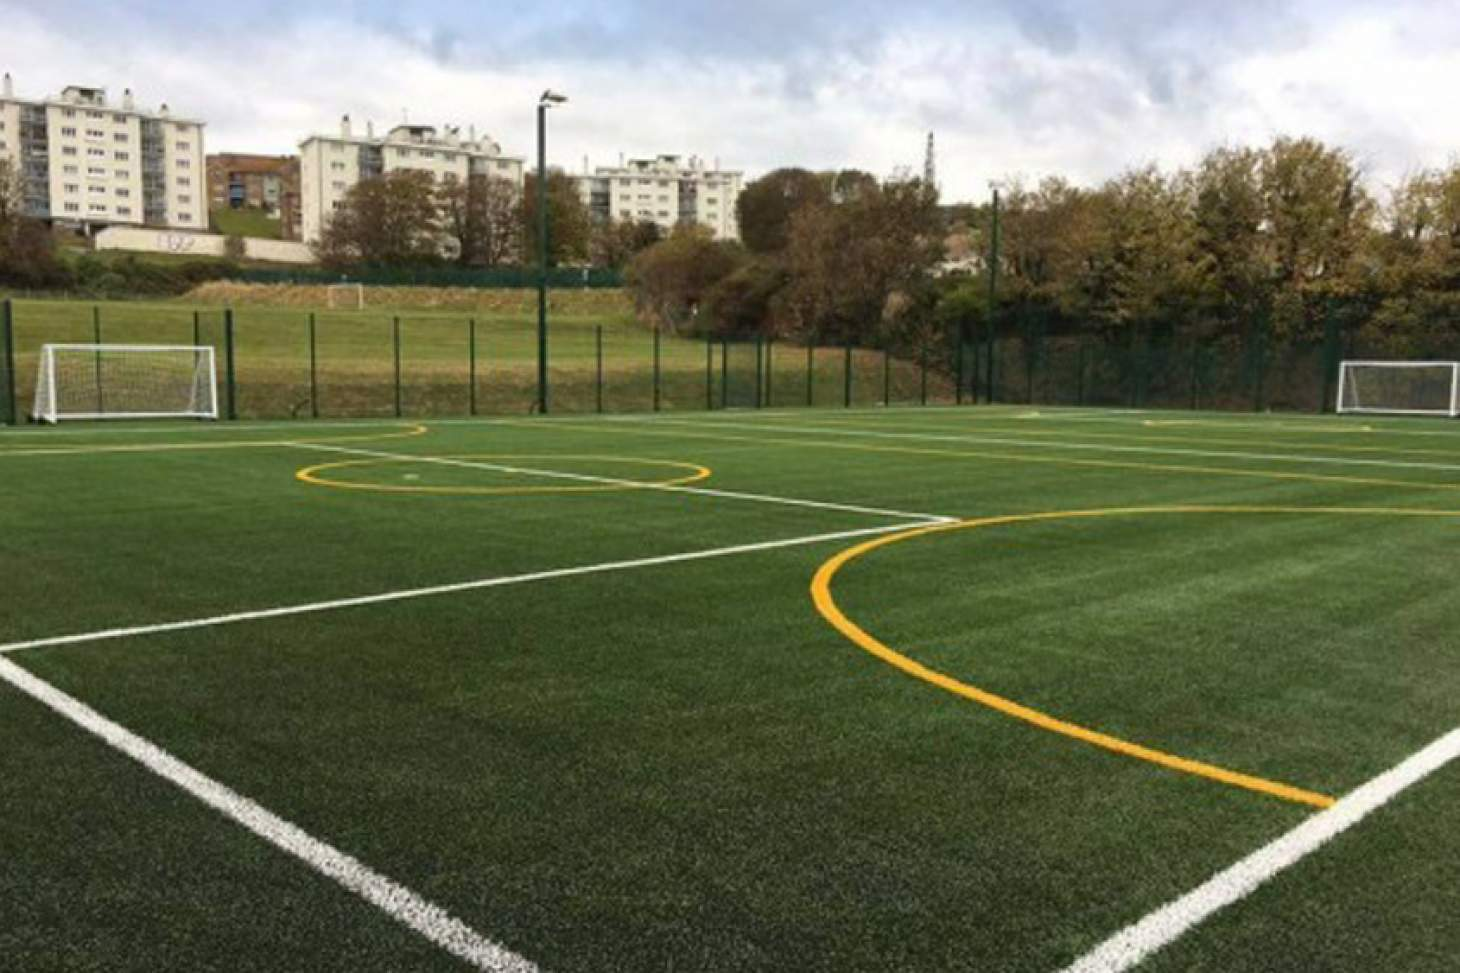 The Manor Road Gym 7 a side | 3G Astroturf football pitch